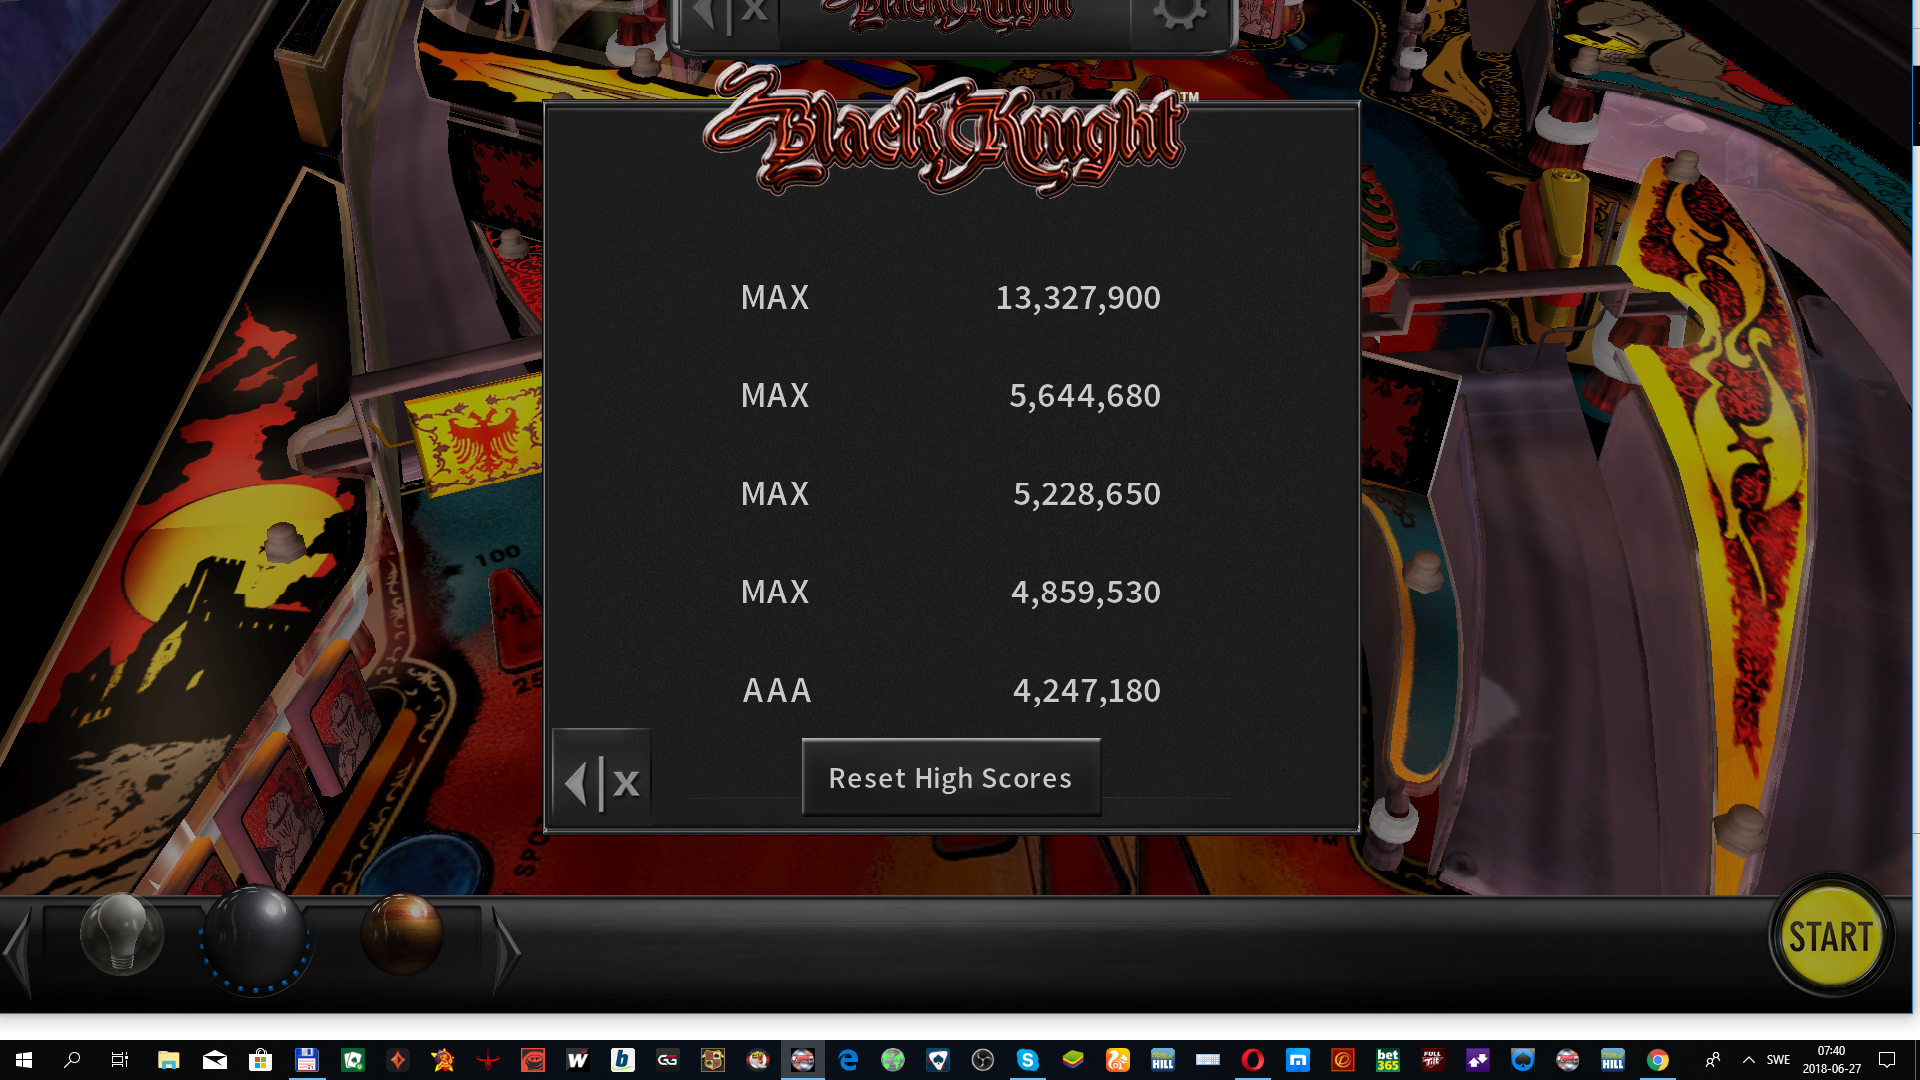 maxgreat: Pinball Arcade: Black Knight (PC) 13,327,900 points on 2018-06-27 00:41:12